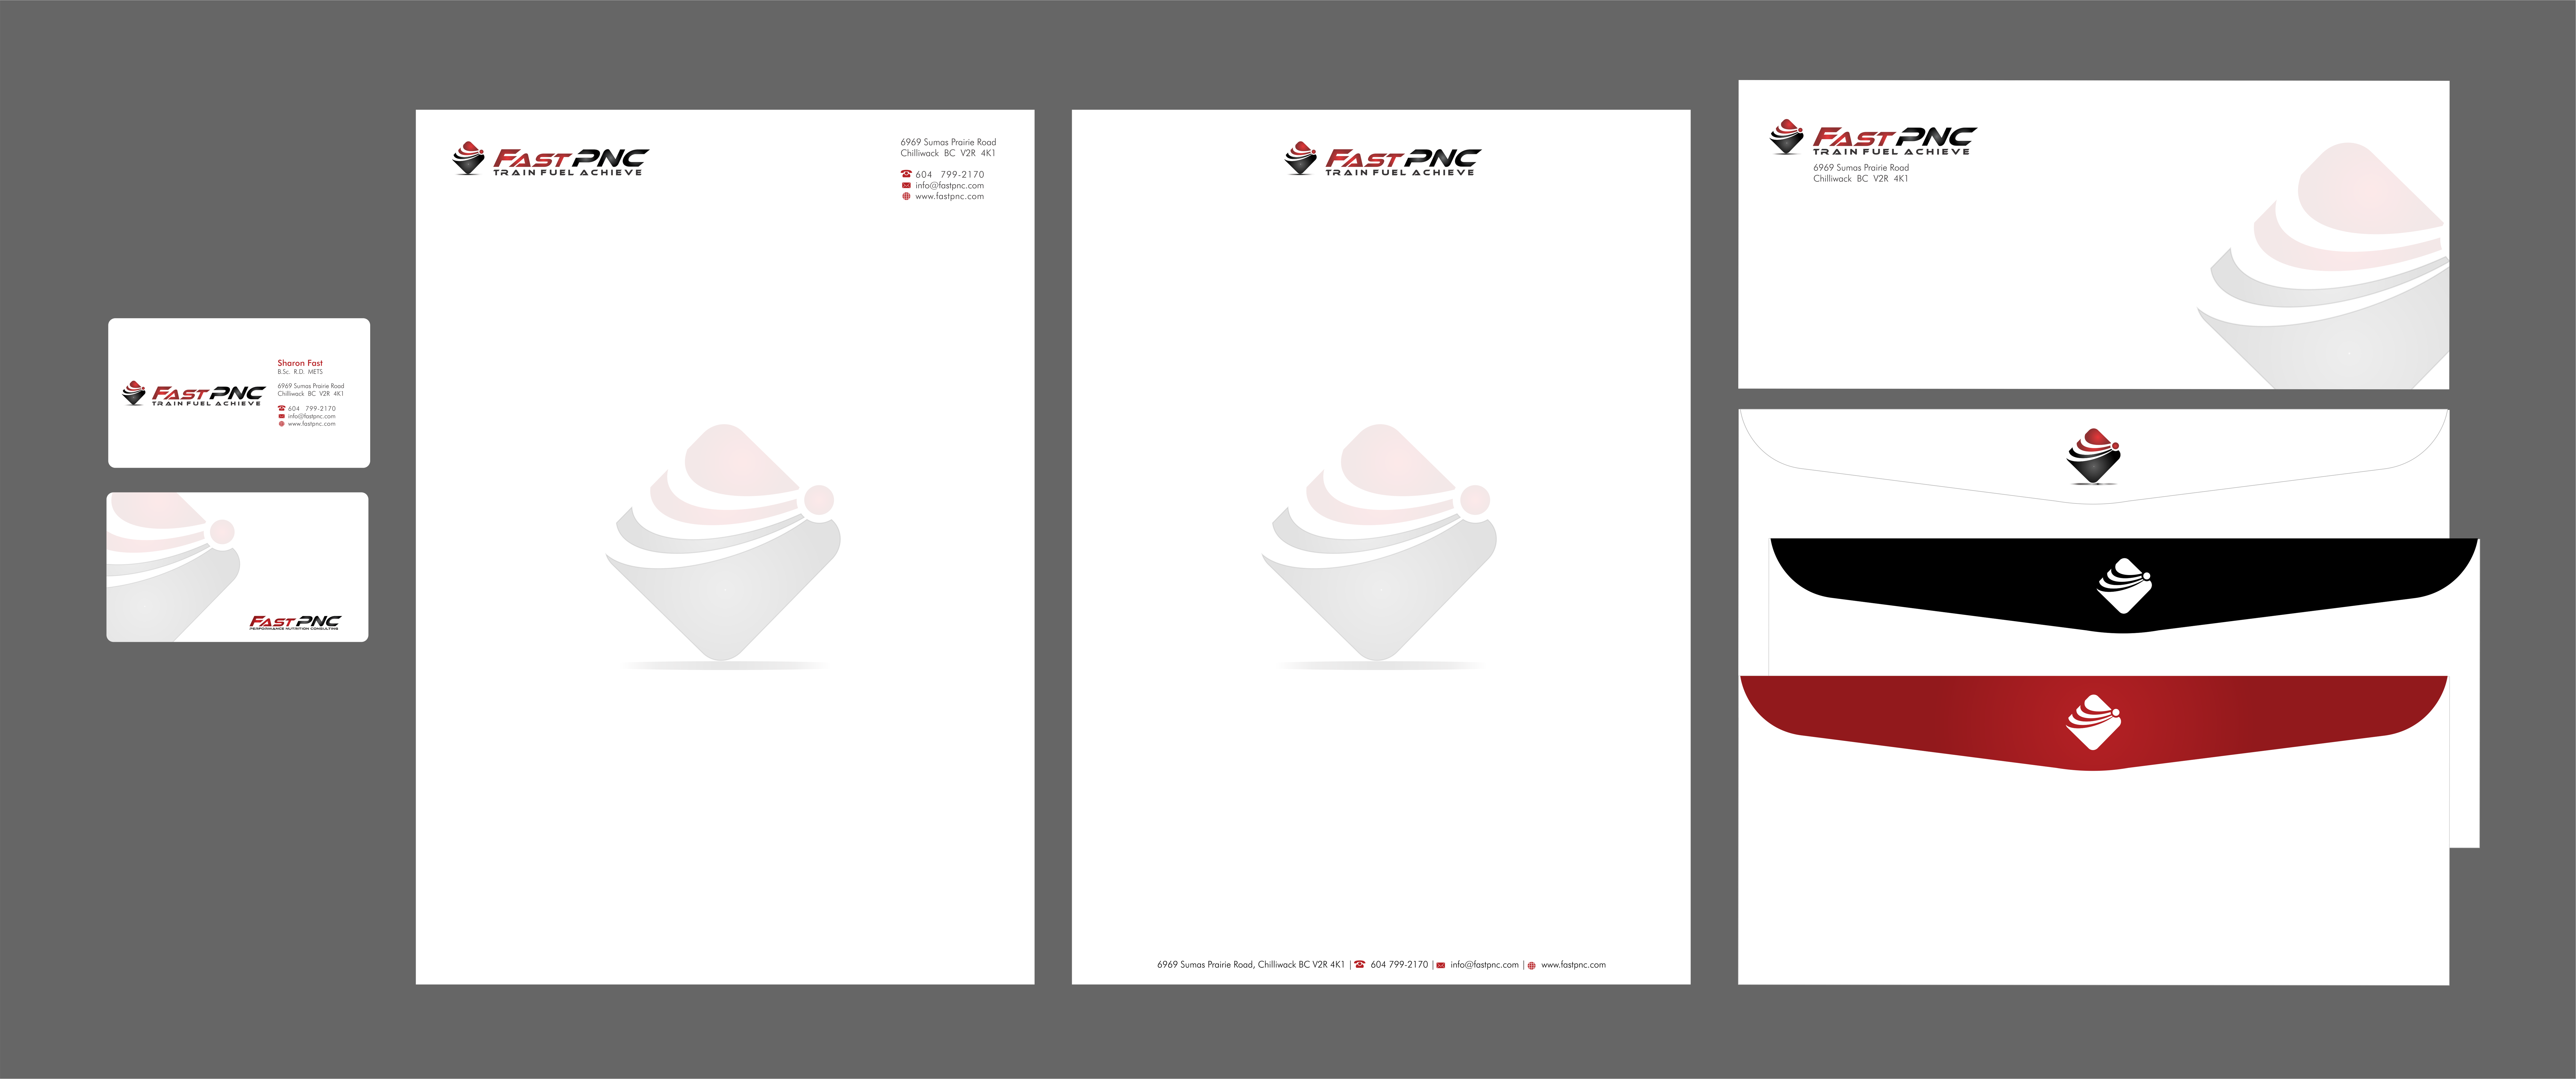 business cards & stationary for sport nutrition consulting company  - logo project launched fast pnc - Sports